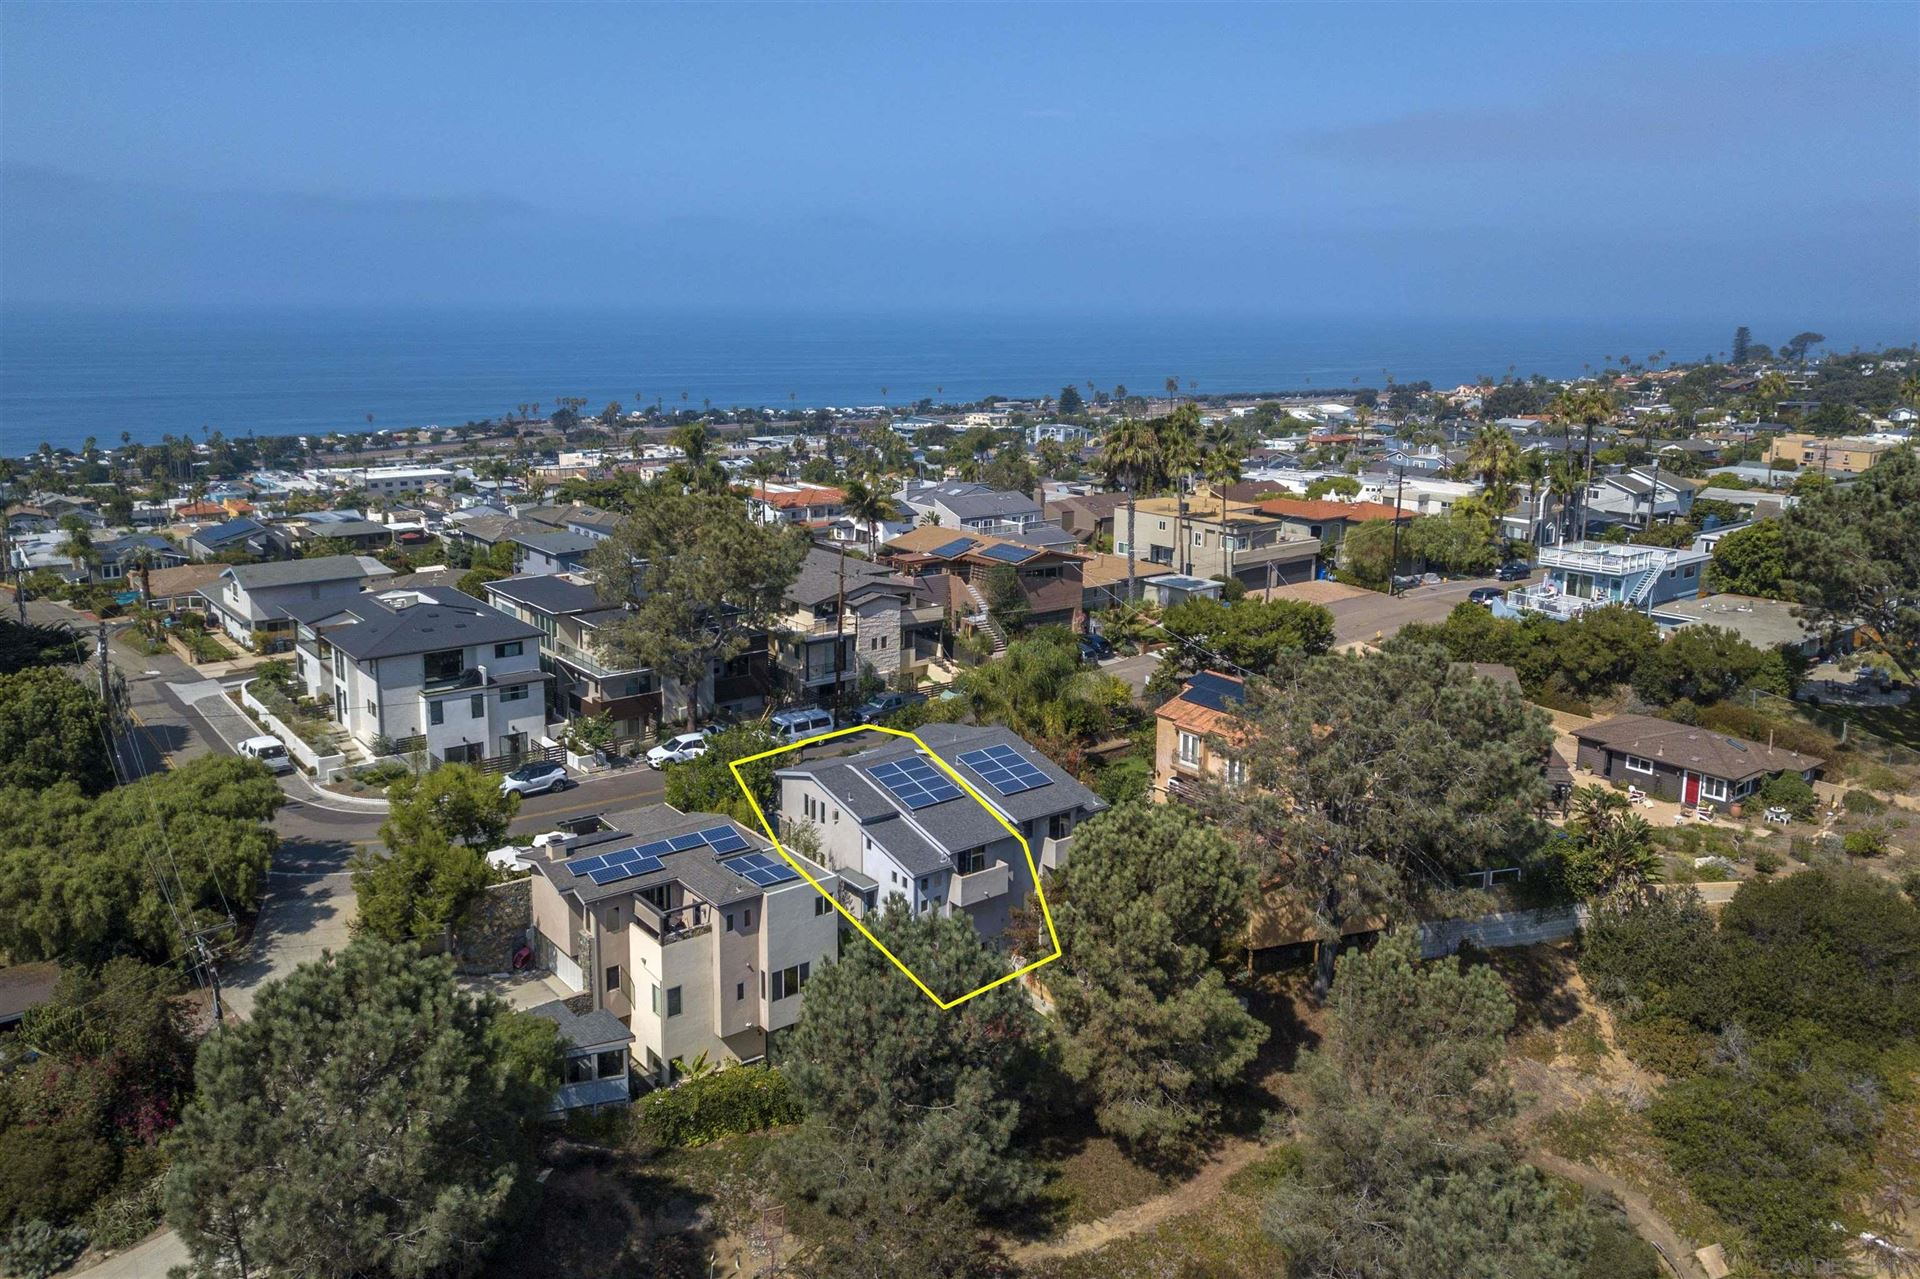 Photo of 2179 Glasgow Ave, Cardiff By The Sea, CA 92007 (MLS # 210028106)